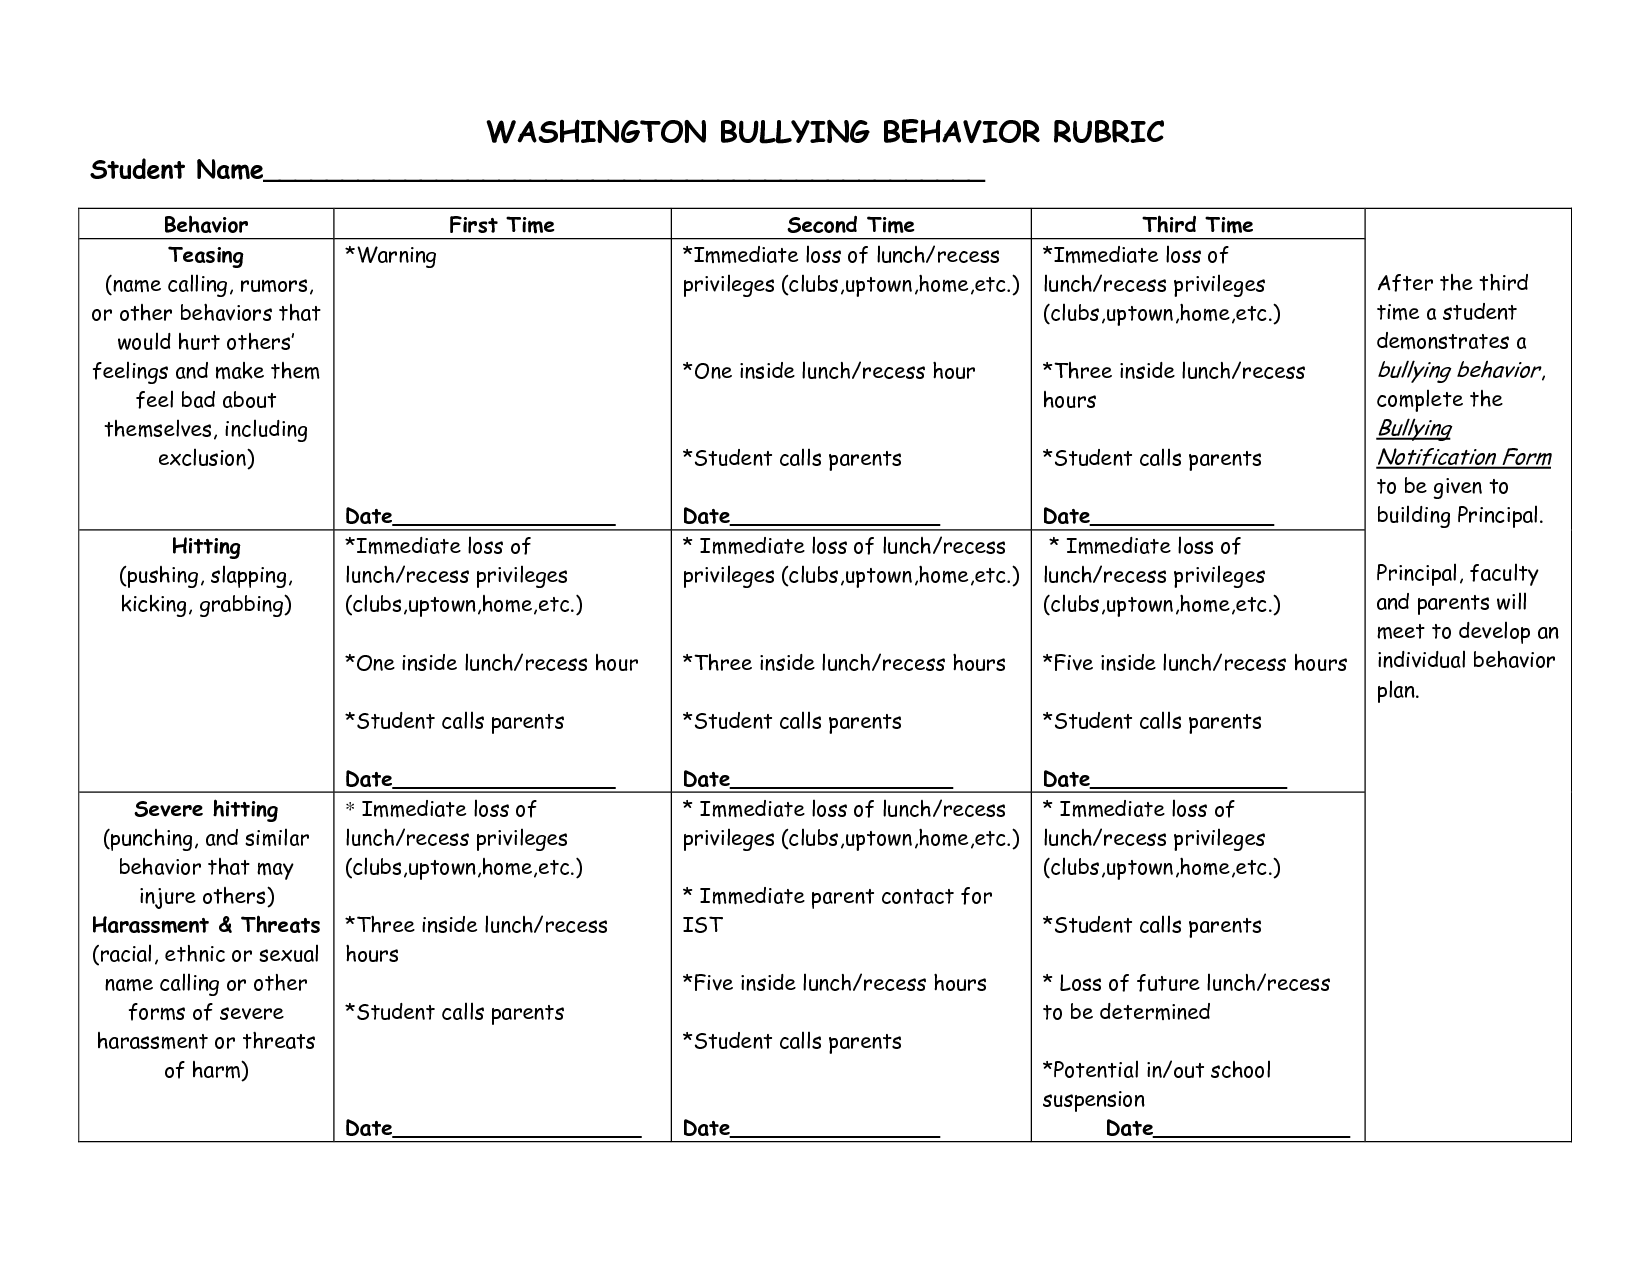 Worksheet On Bullying